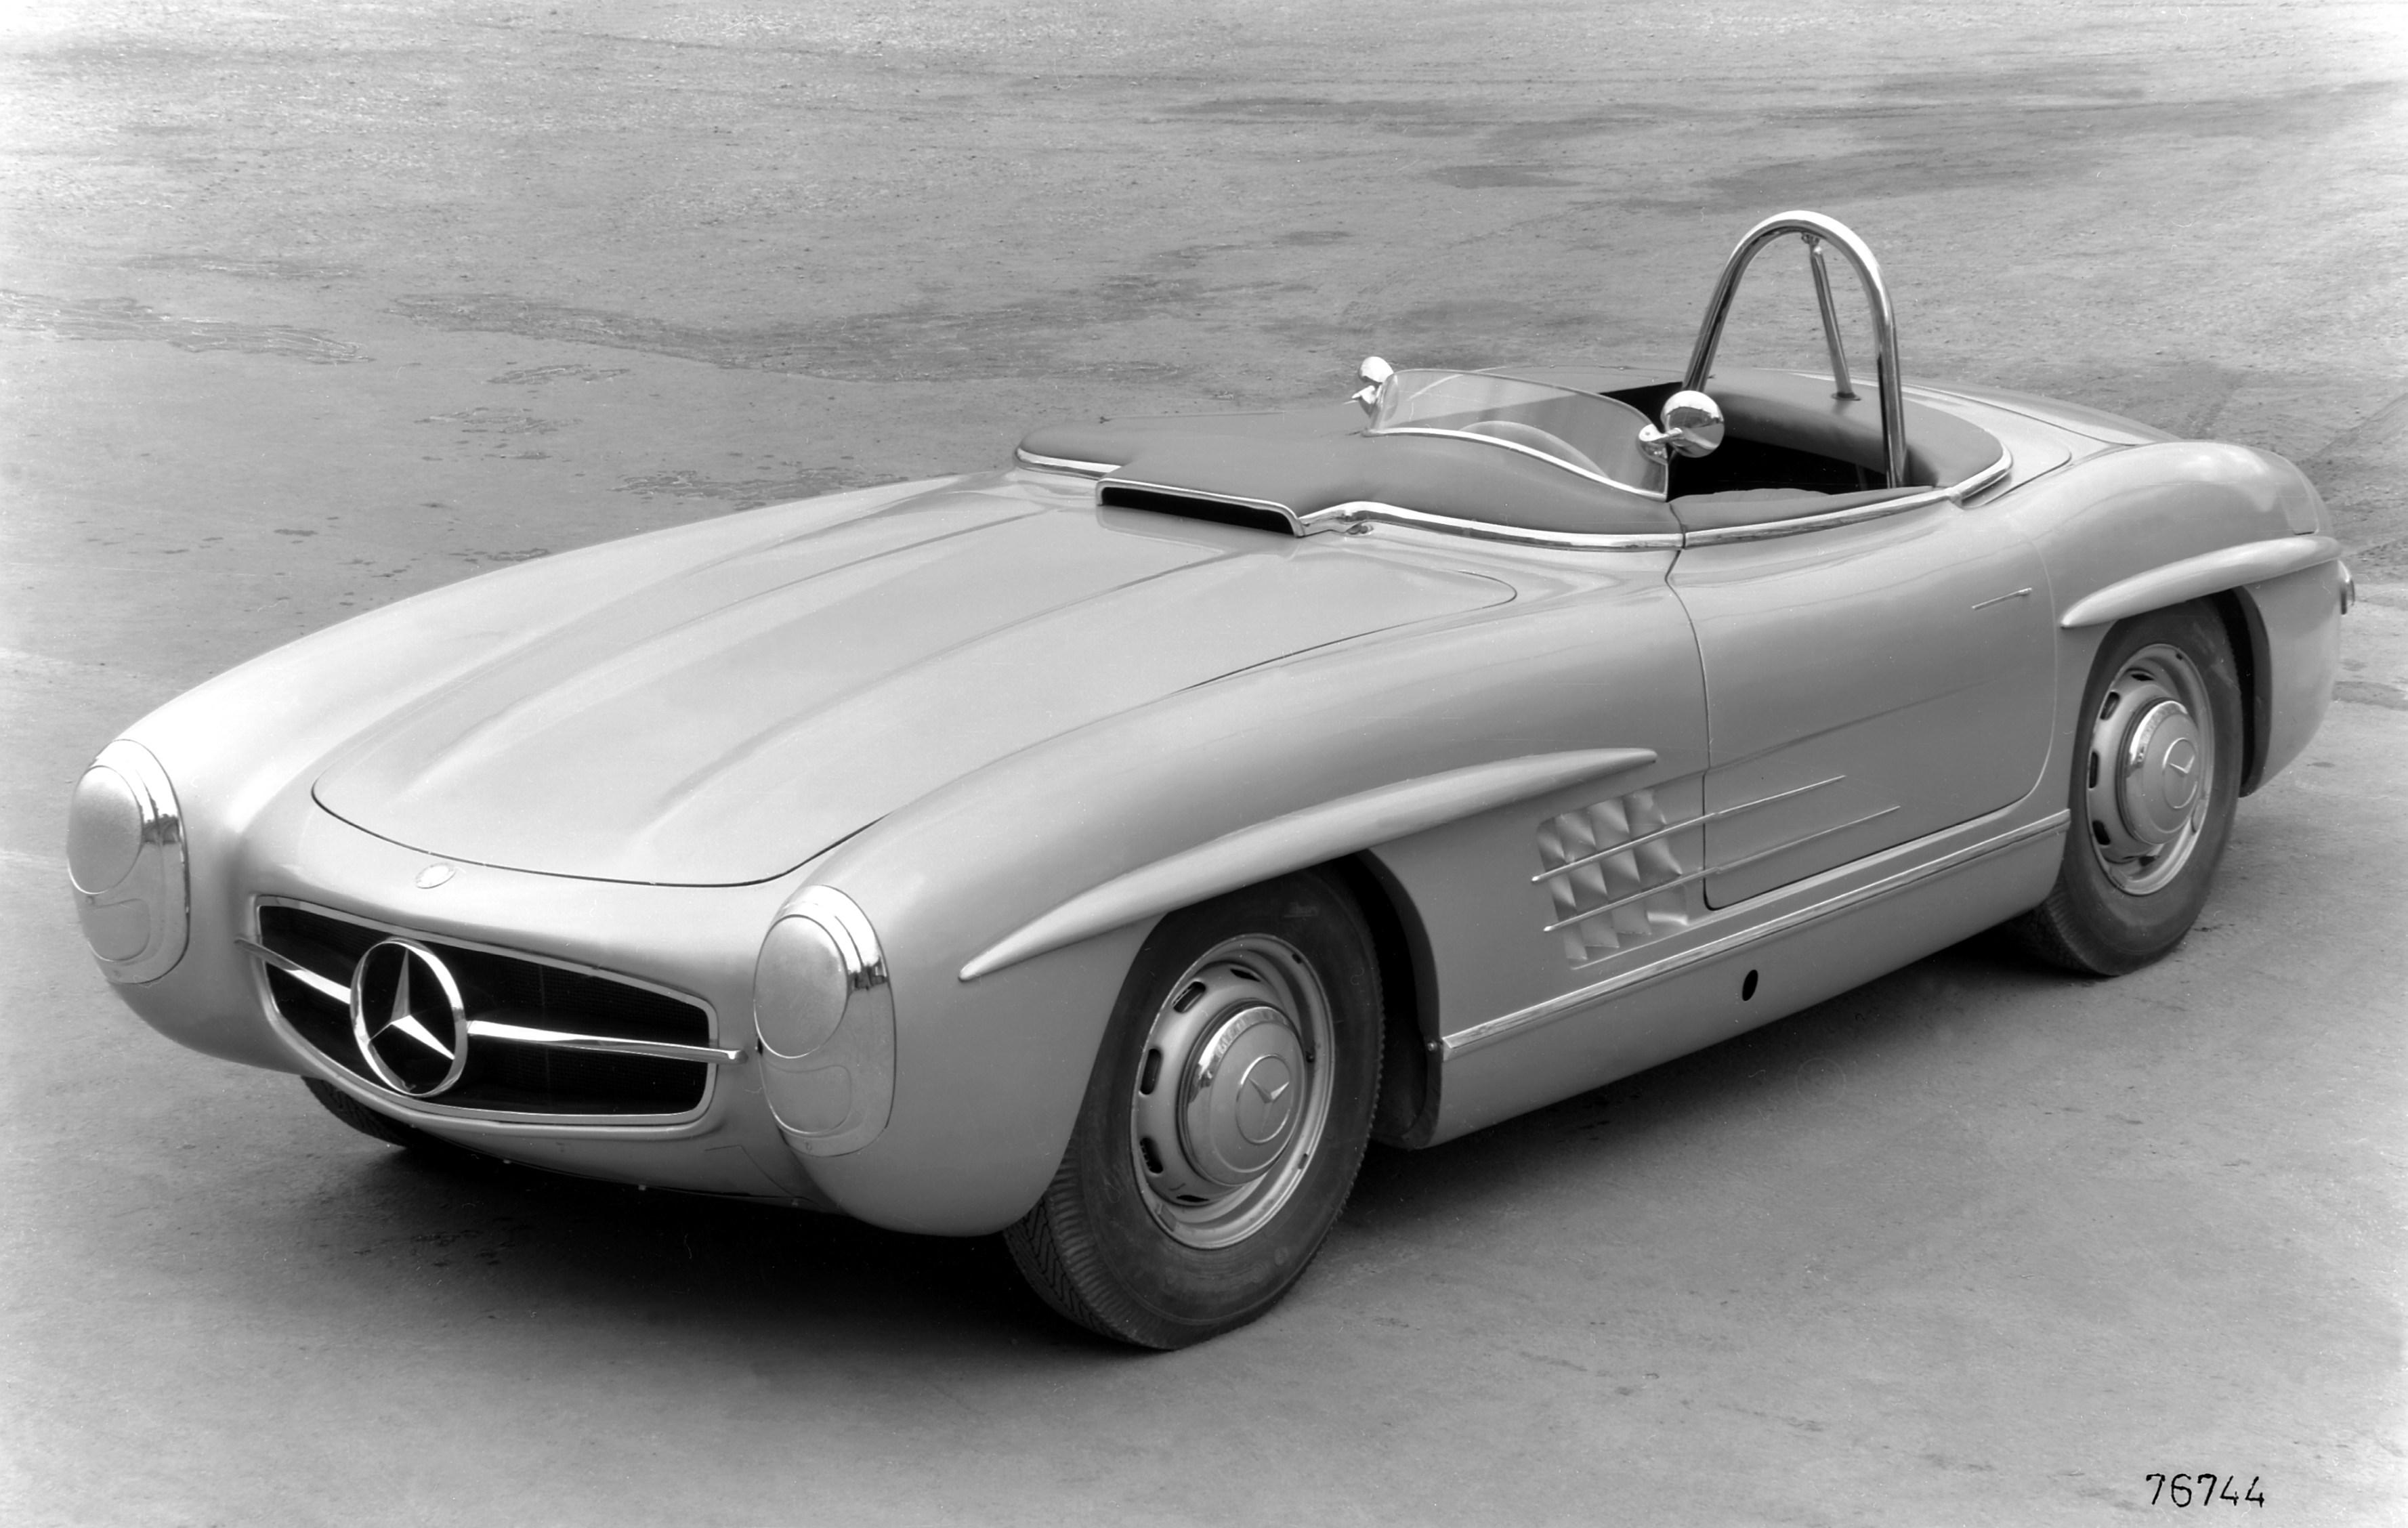 This vehicle is a special, very lightweight variant of the 300 SL Roadster of which just two units were built in 1957 specifically for participation in the American sportscar championship. Paul O'Shea defeated the competition by a clear margin to win in Category D. - Mercedes-Benz Tourensportwagen Typ 300 SLS (W 198), 1957